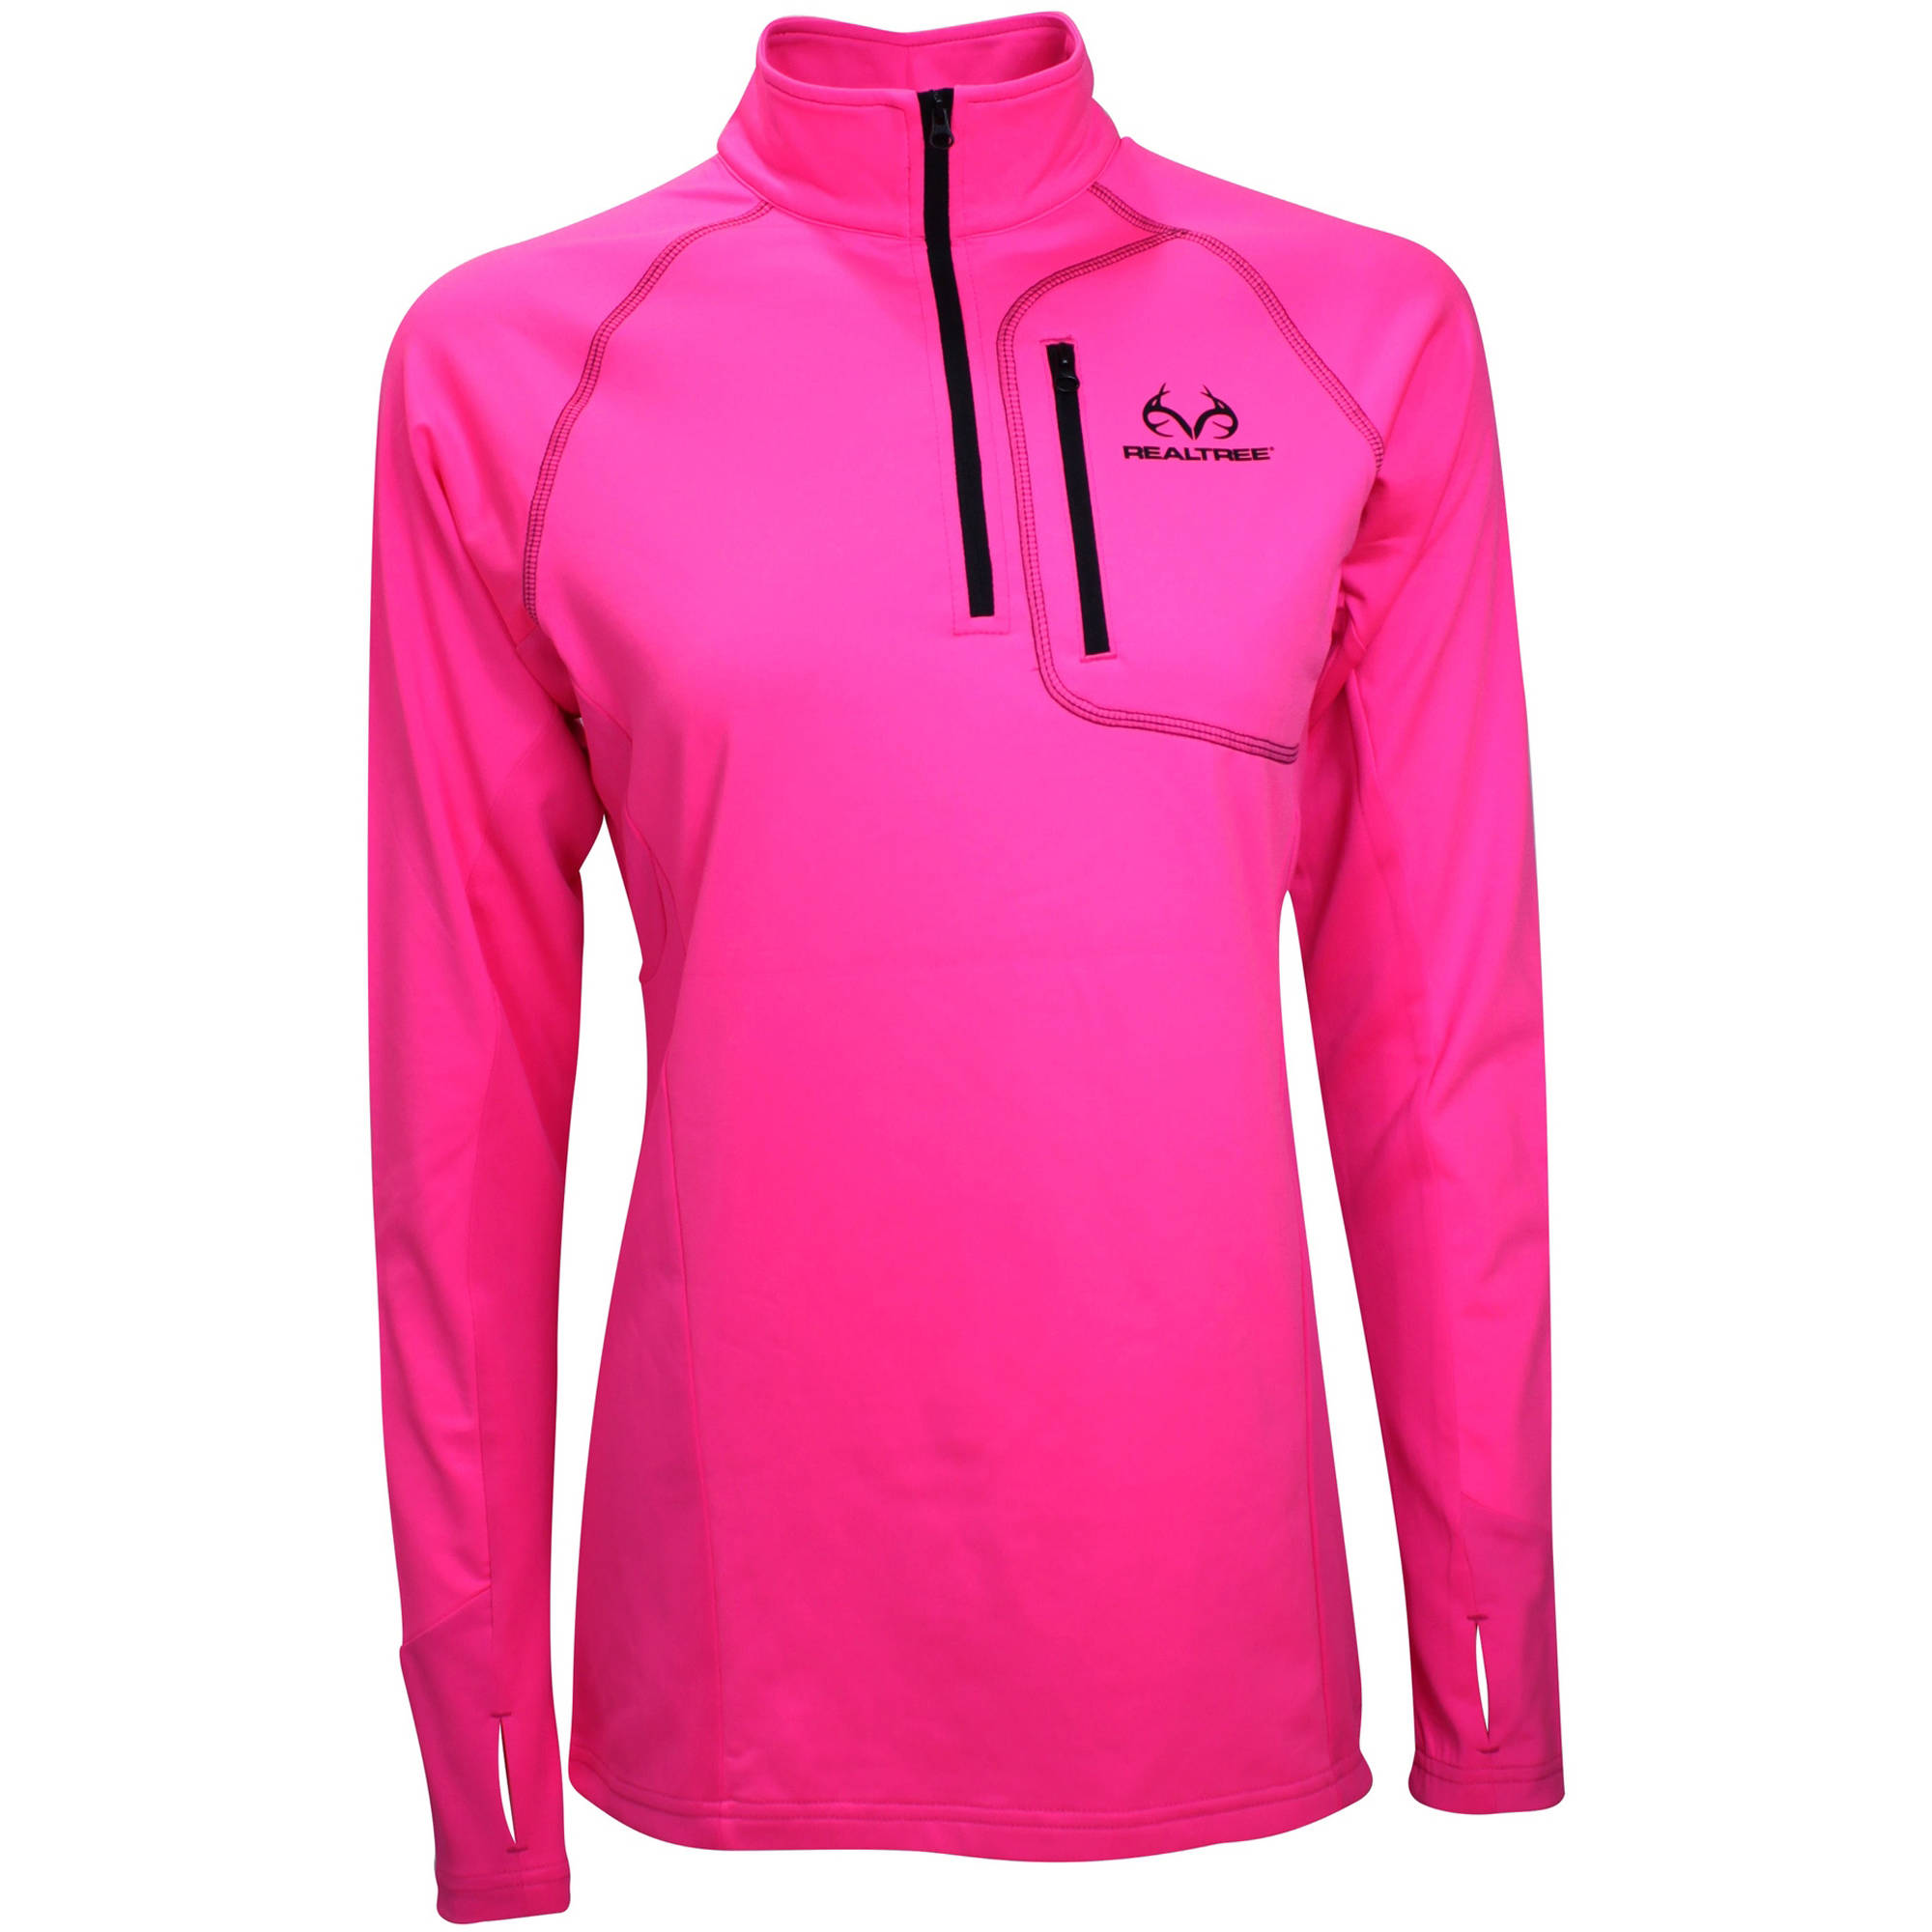 REALTREE LDS QTR ZIP - REALTREE SOLID SAFETY PINK